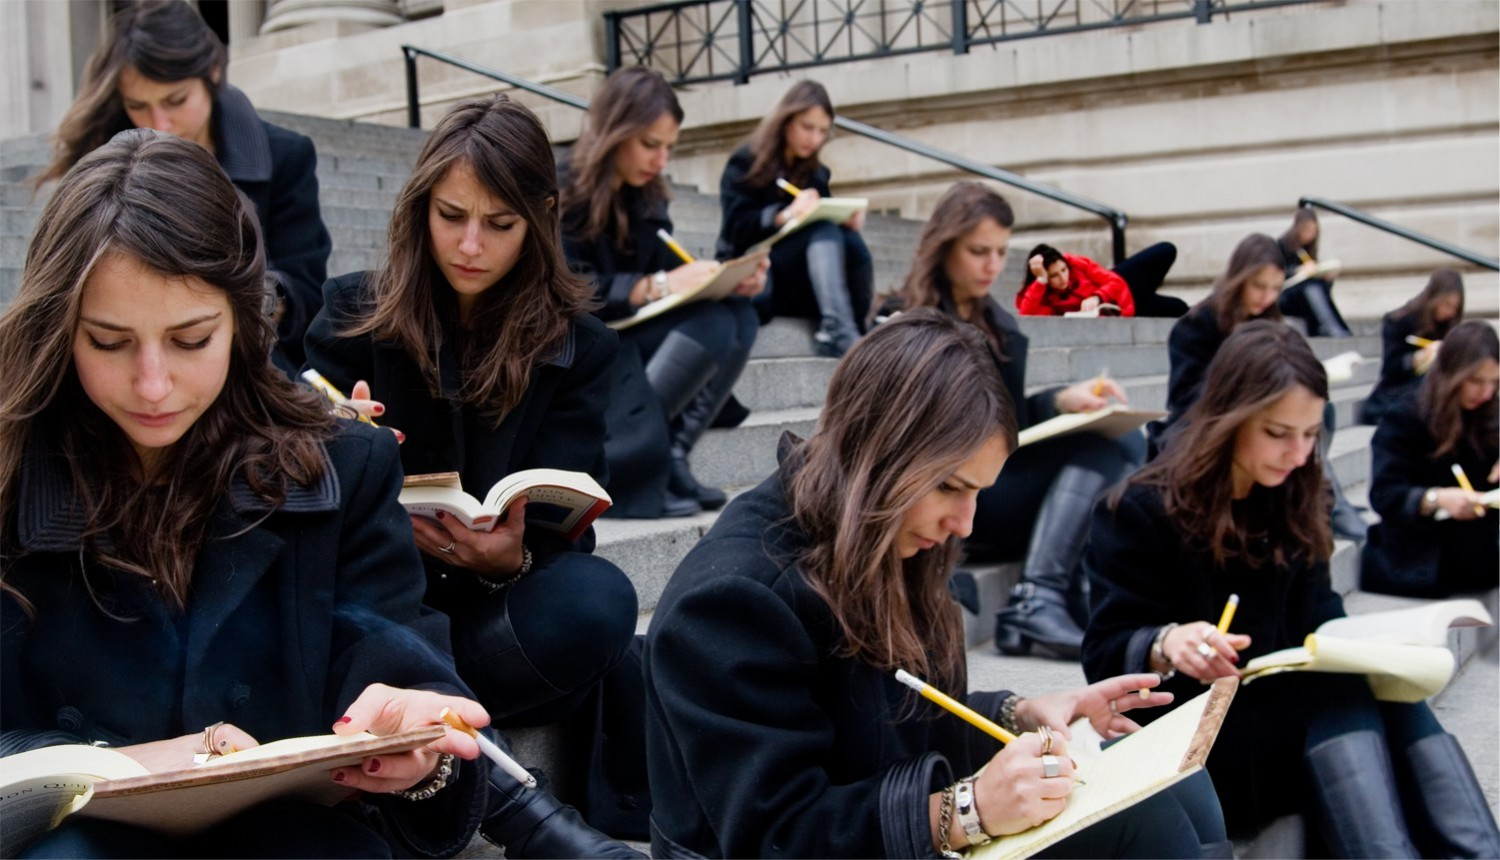 Group of women with brown hair and dark jackets reading and taking notes on the front steps of the Metropolitan Museum of Art. One women in the background in red reading lazily on her side.